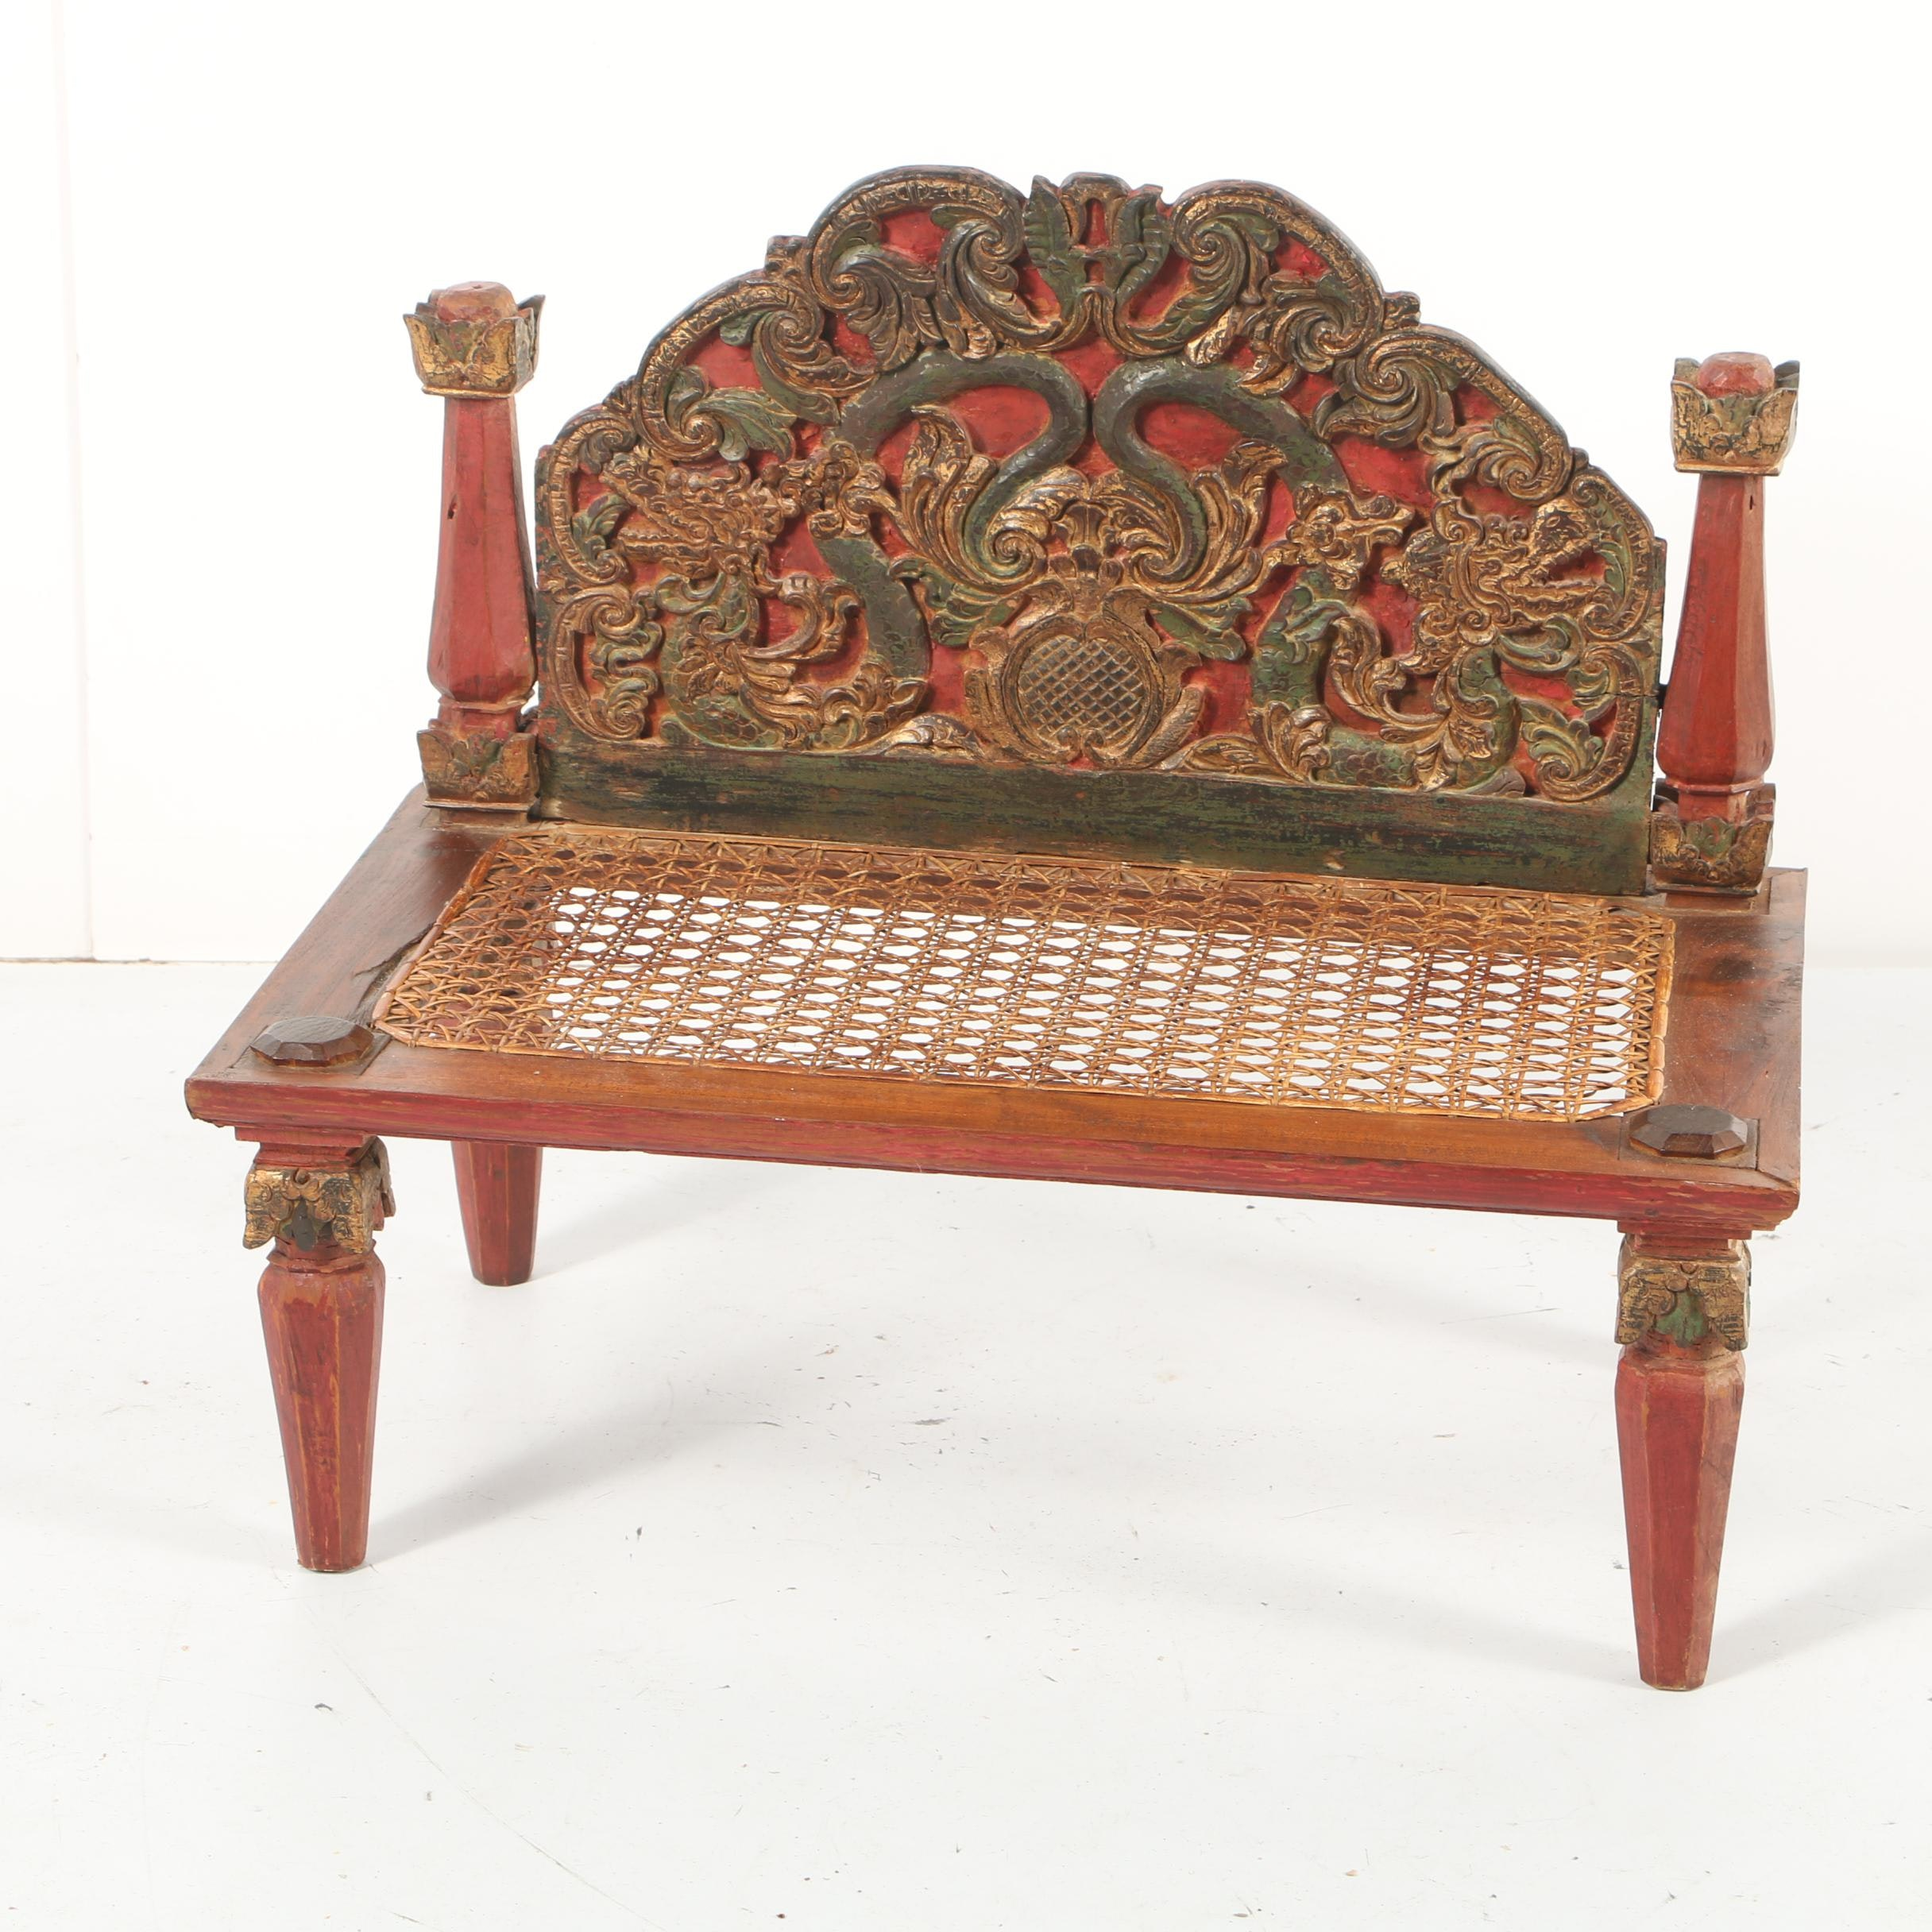 Vintage Indonesian Carved Wood Accent Bench